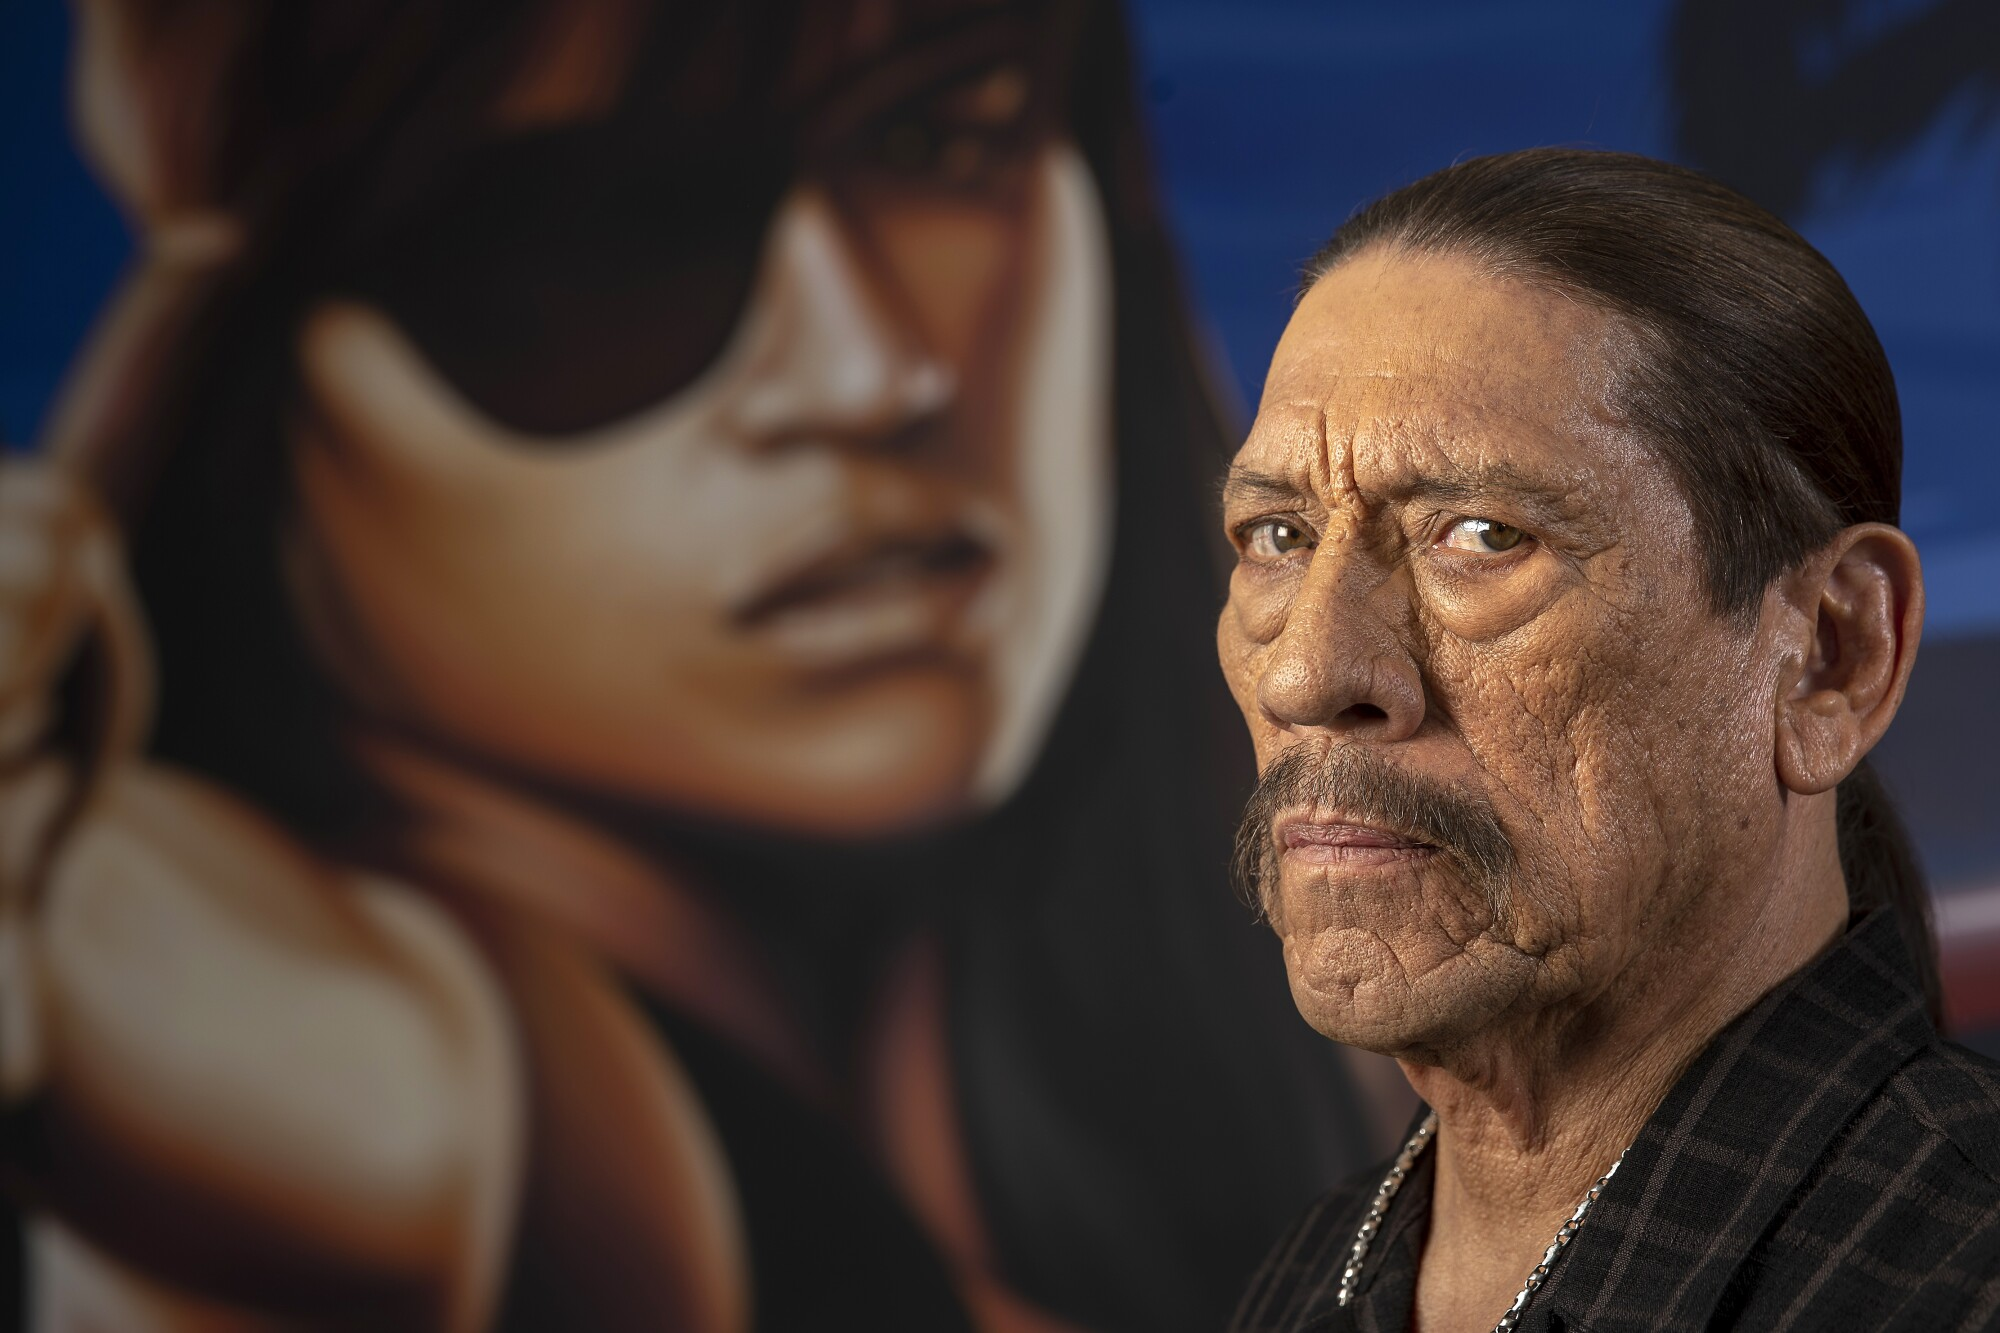 Danny Trejo in front of an image of a person with a black eye patch